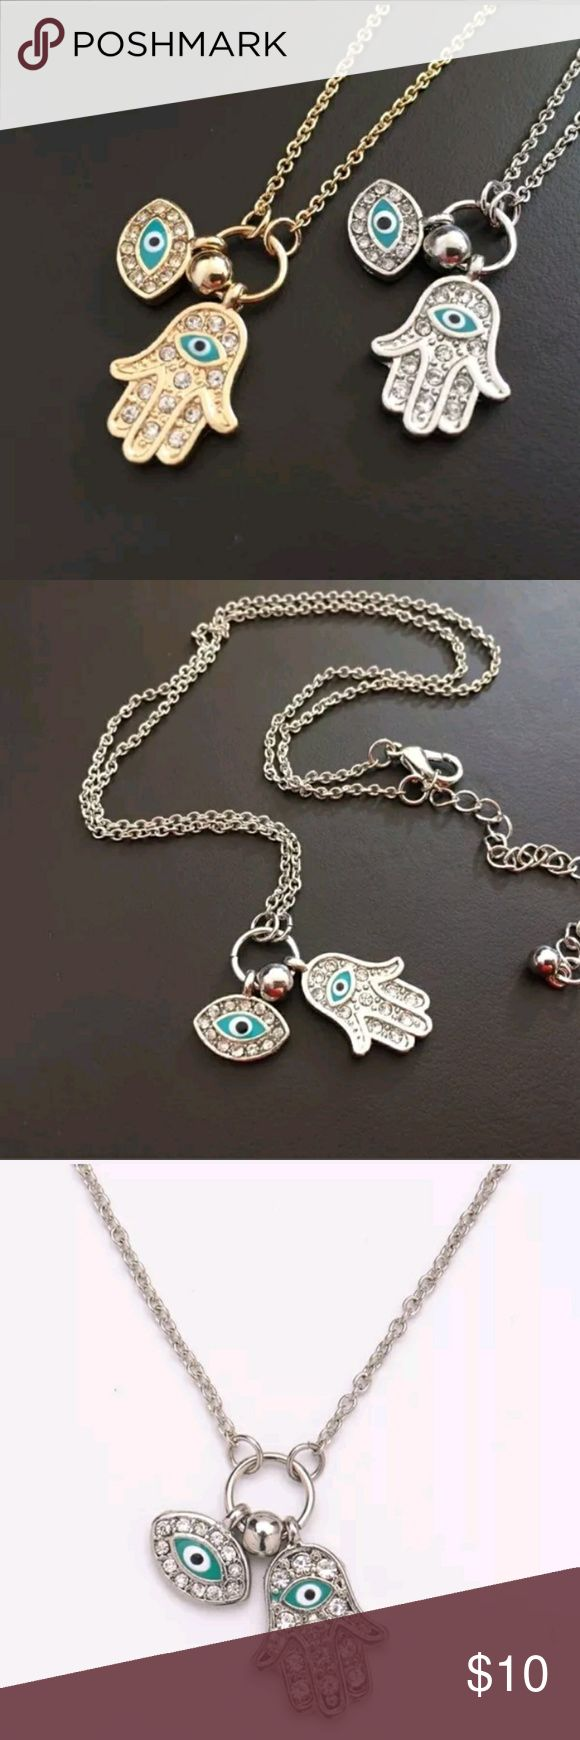 Blue Evil Eye Charms Hamsa Hand Fatima necklace Cute evil eye and fatima hand necklace with diamonds . Available in gold & silver Jewelry Necklaces